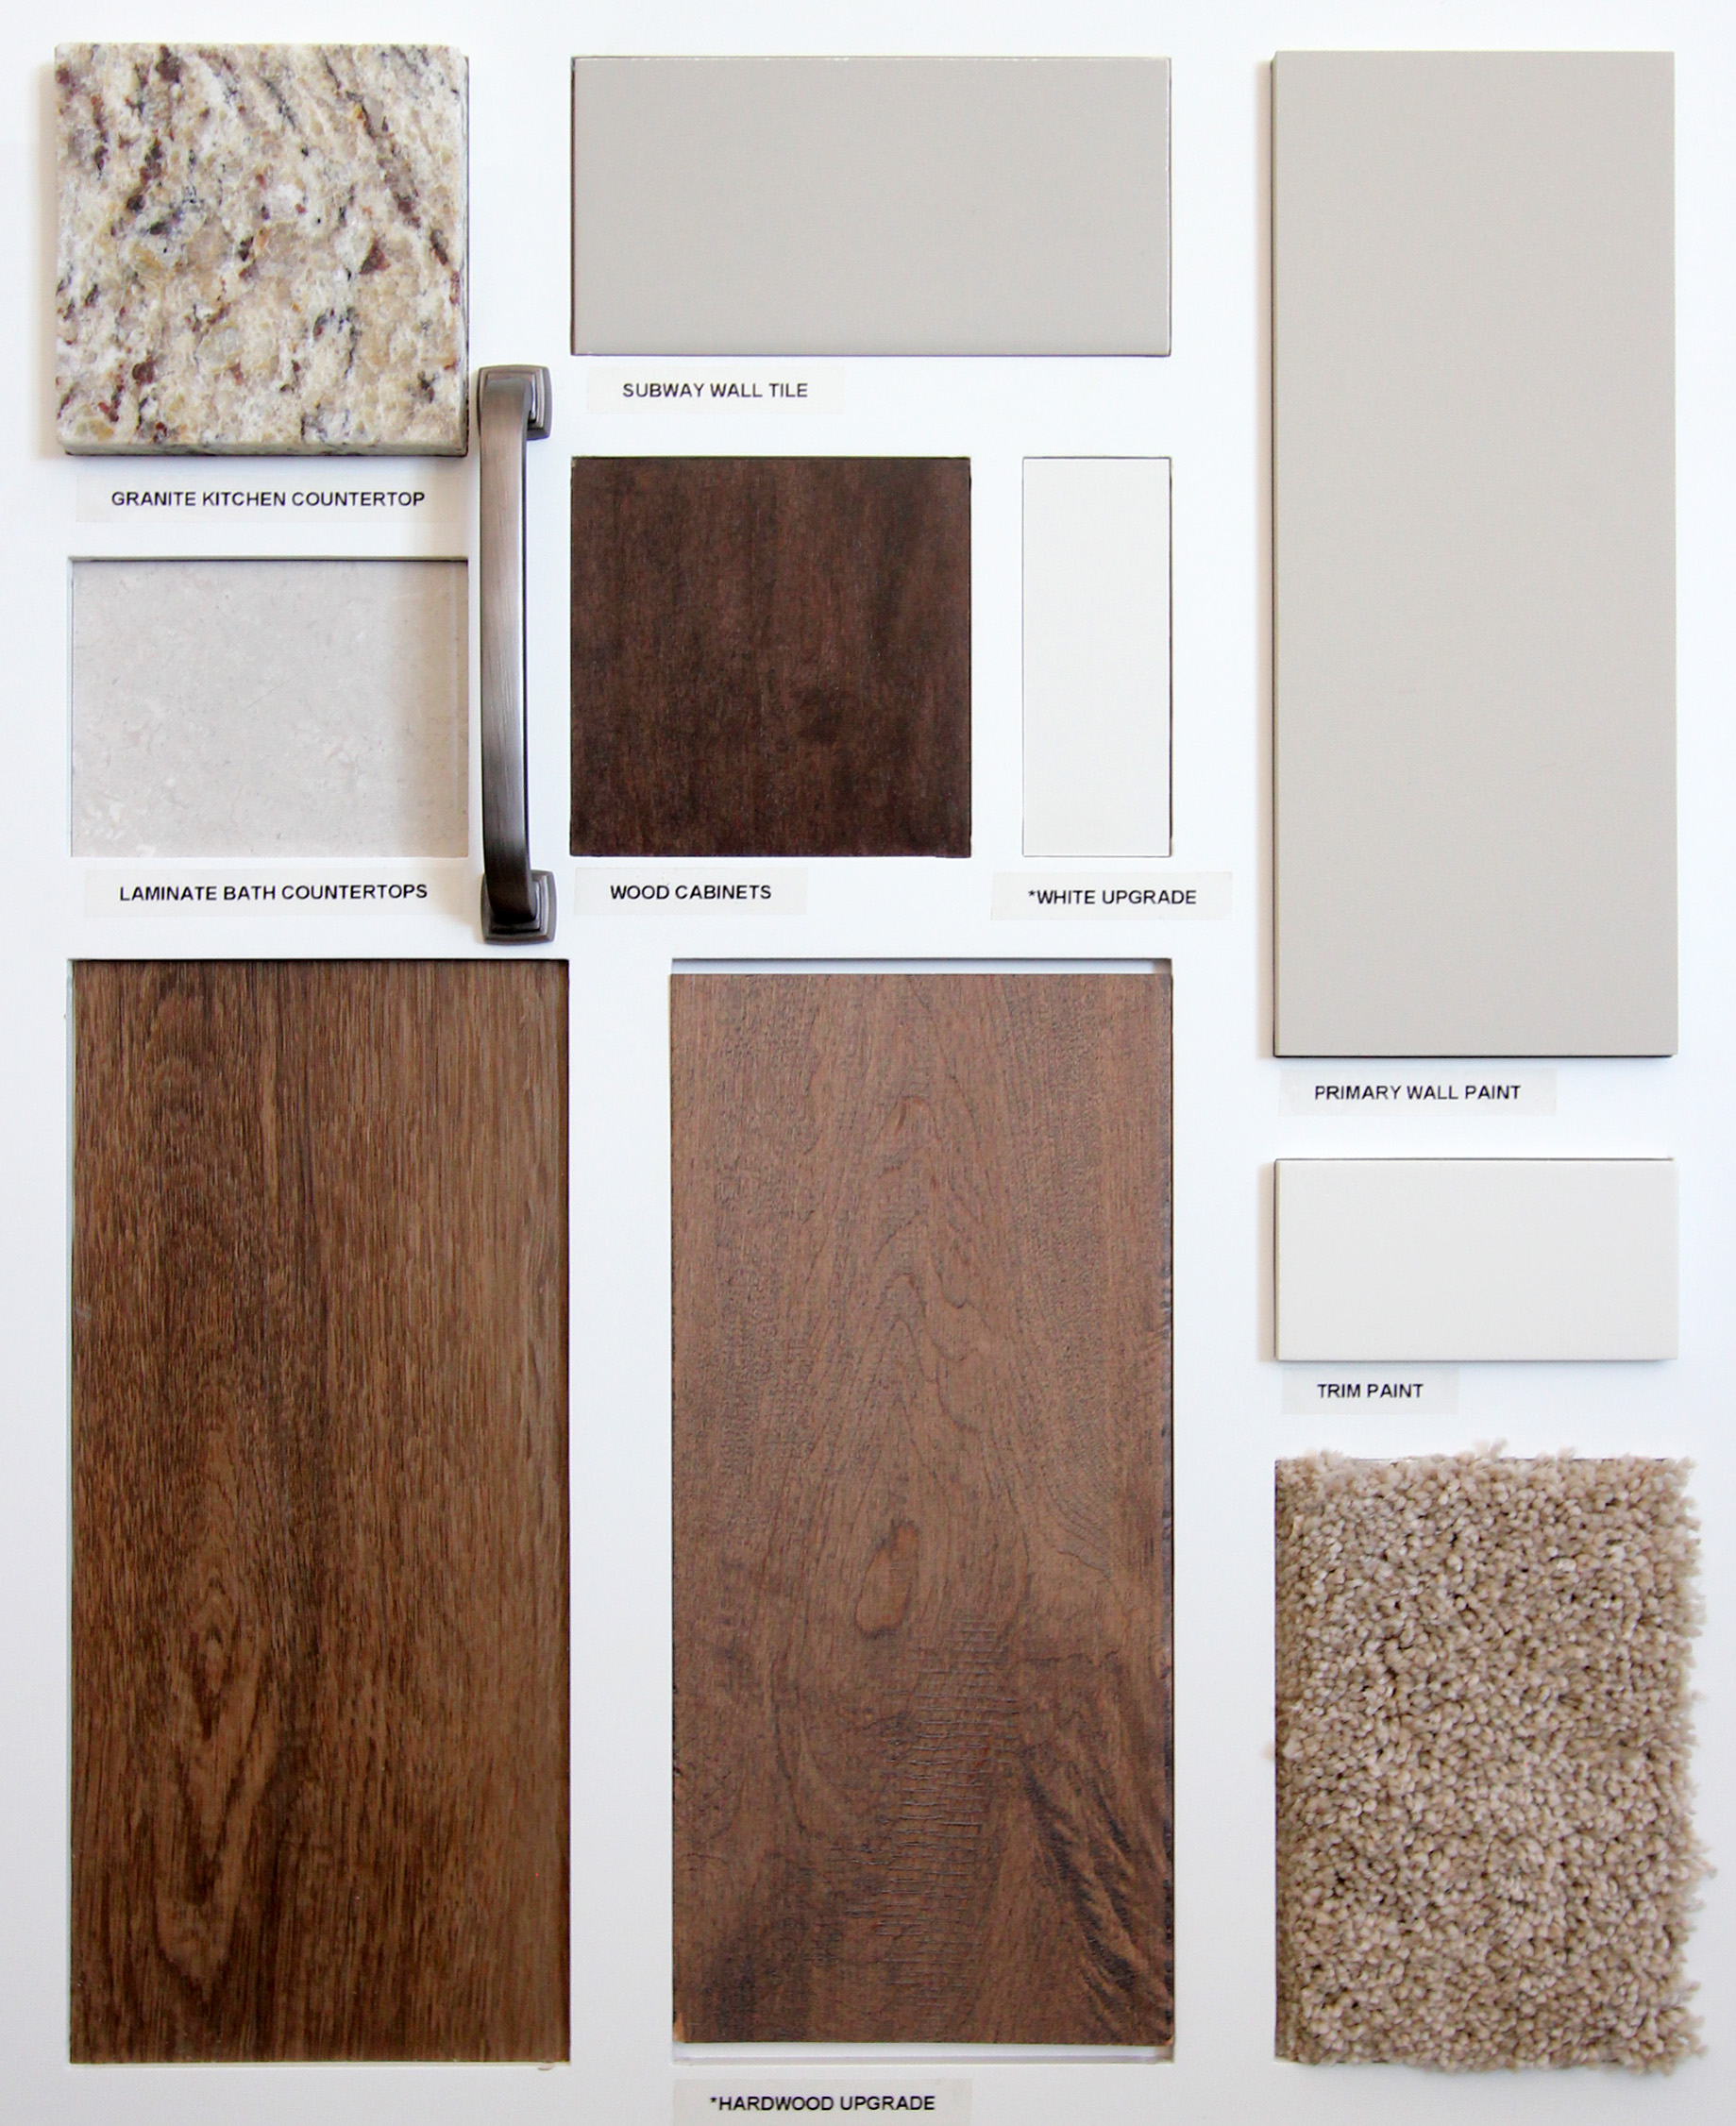 Timber - The rugged, natural beauty of the forest was the inspiration behind warm woods and earthy tones. This contemporary twist on rustic will have your home feeling both fresh and inviting.